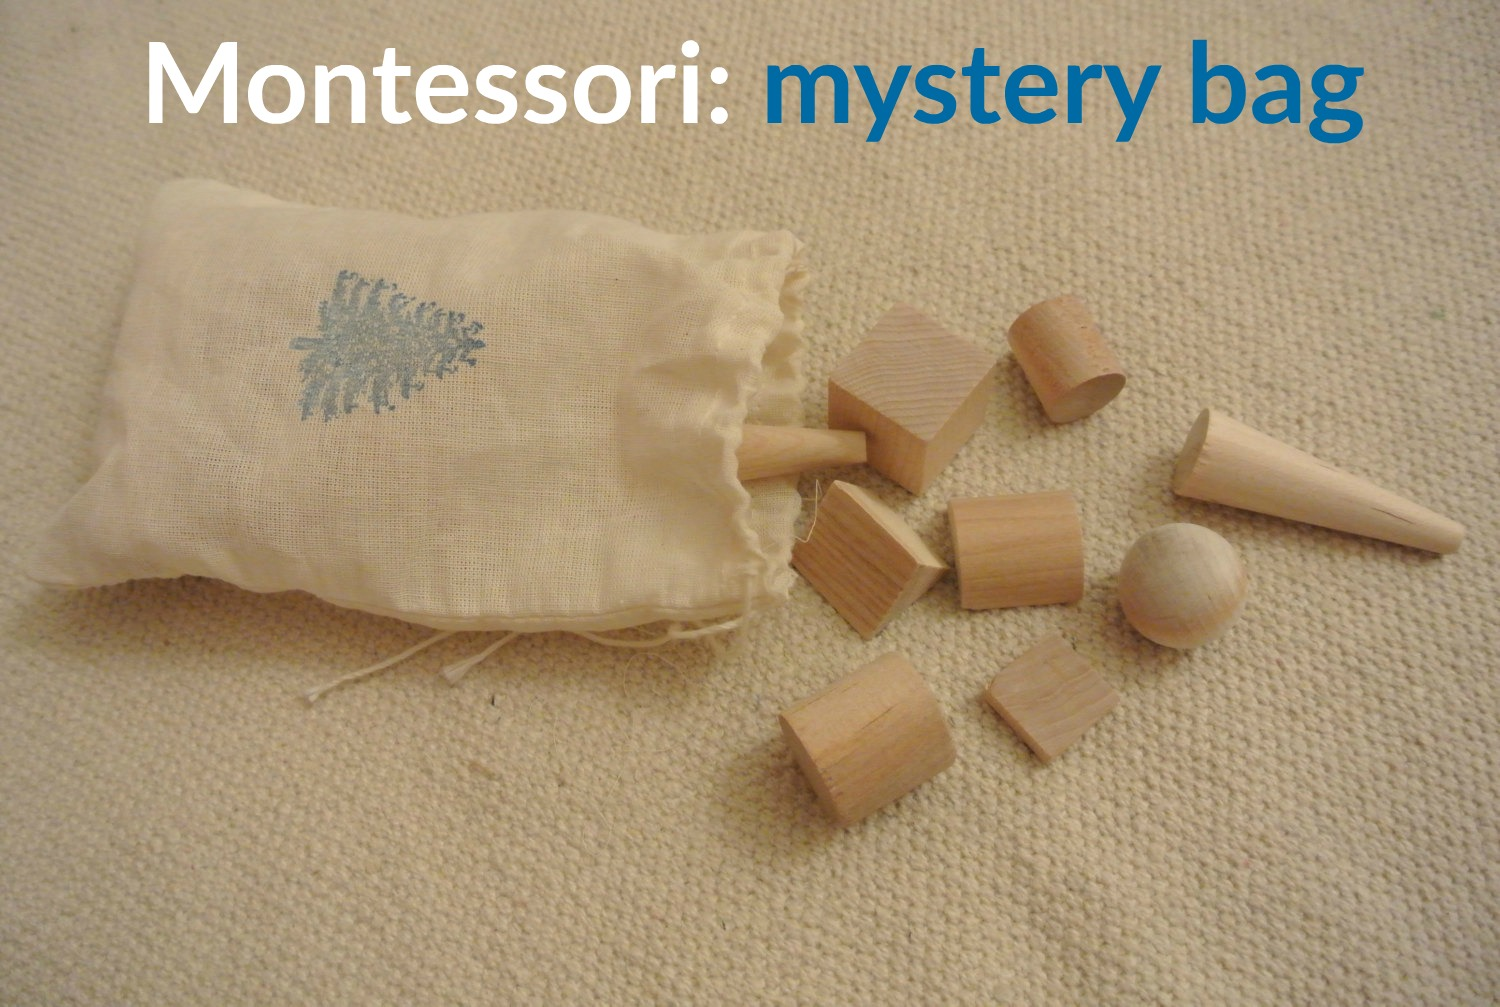 montessori-mystery-bag-tx